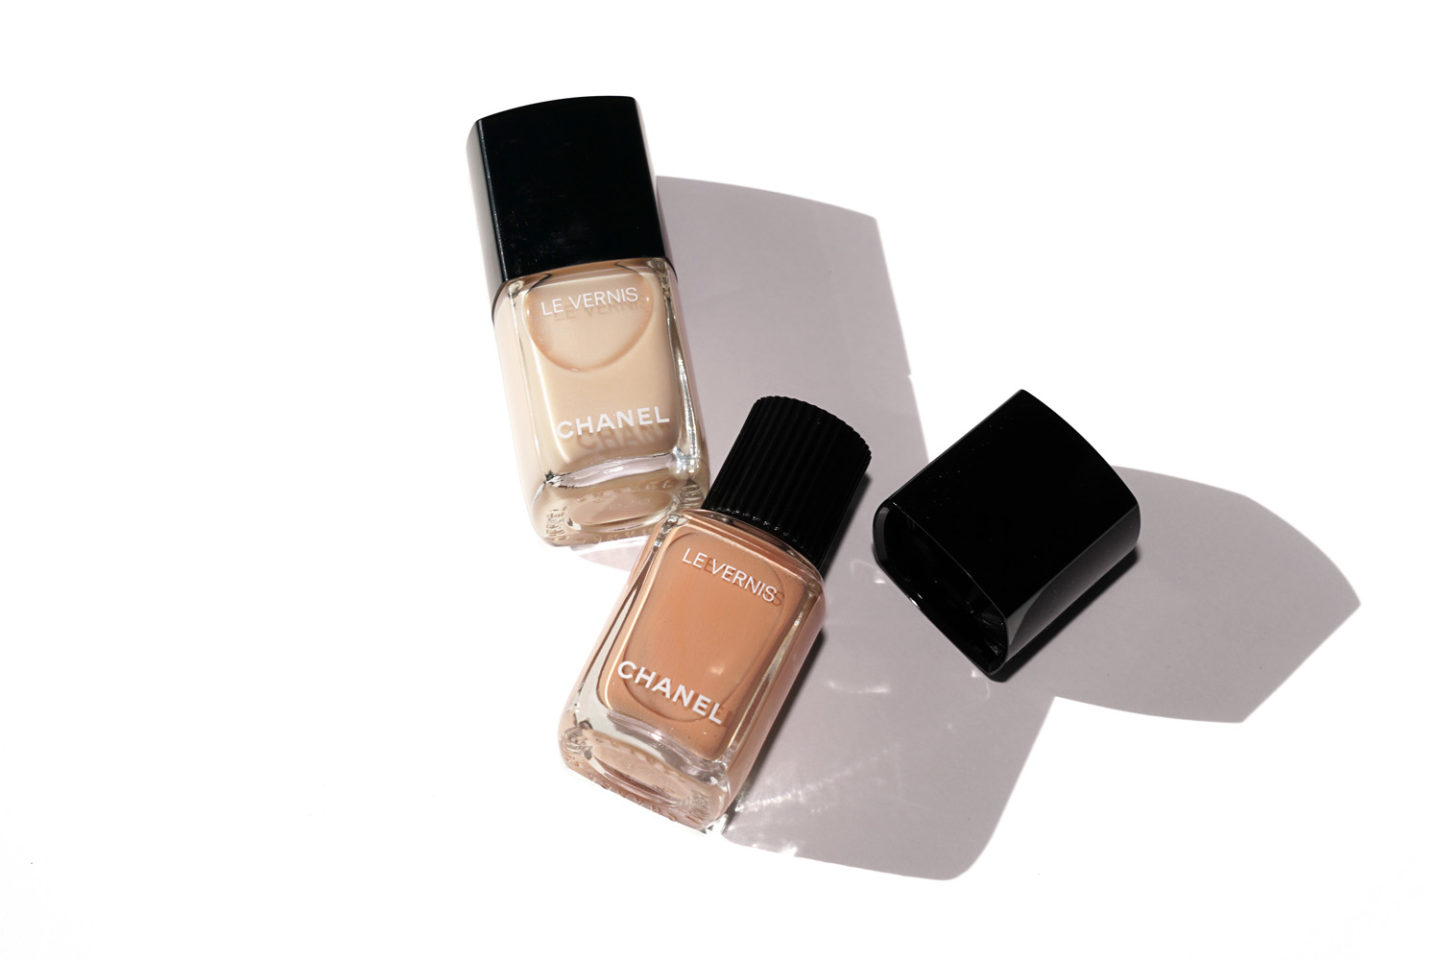 Chanel Le Vernis Blanc White and Beige Beige Spring 2017